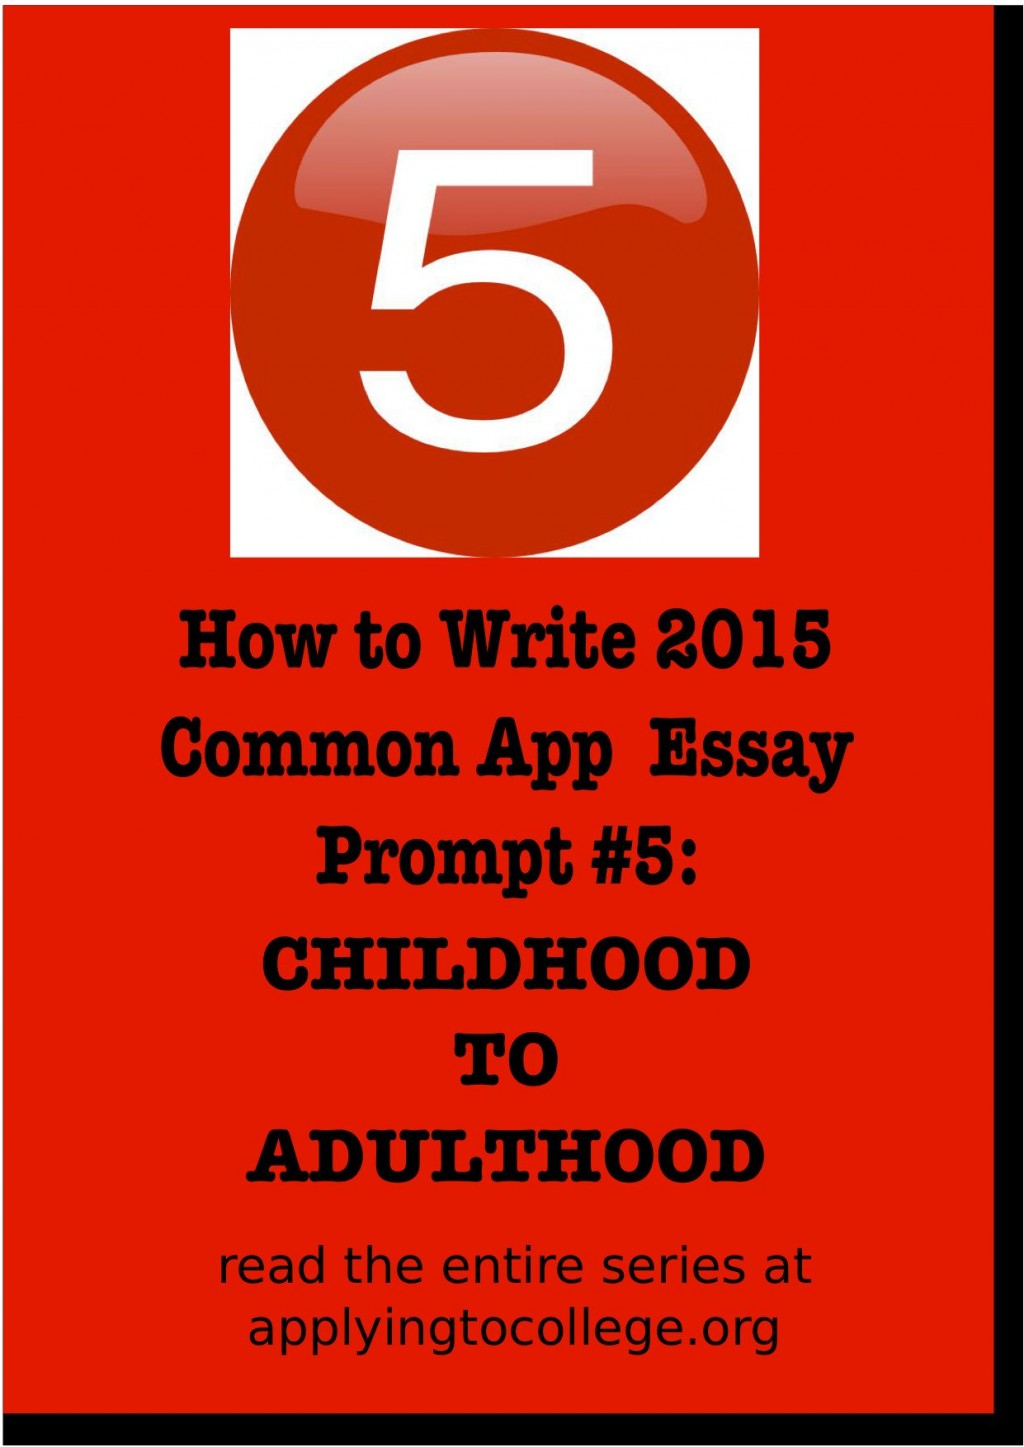 013 Essay Example Common App Unusual Prompt Examples 4 Prompts Word Limit Large